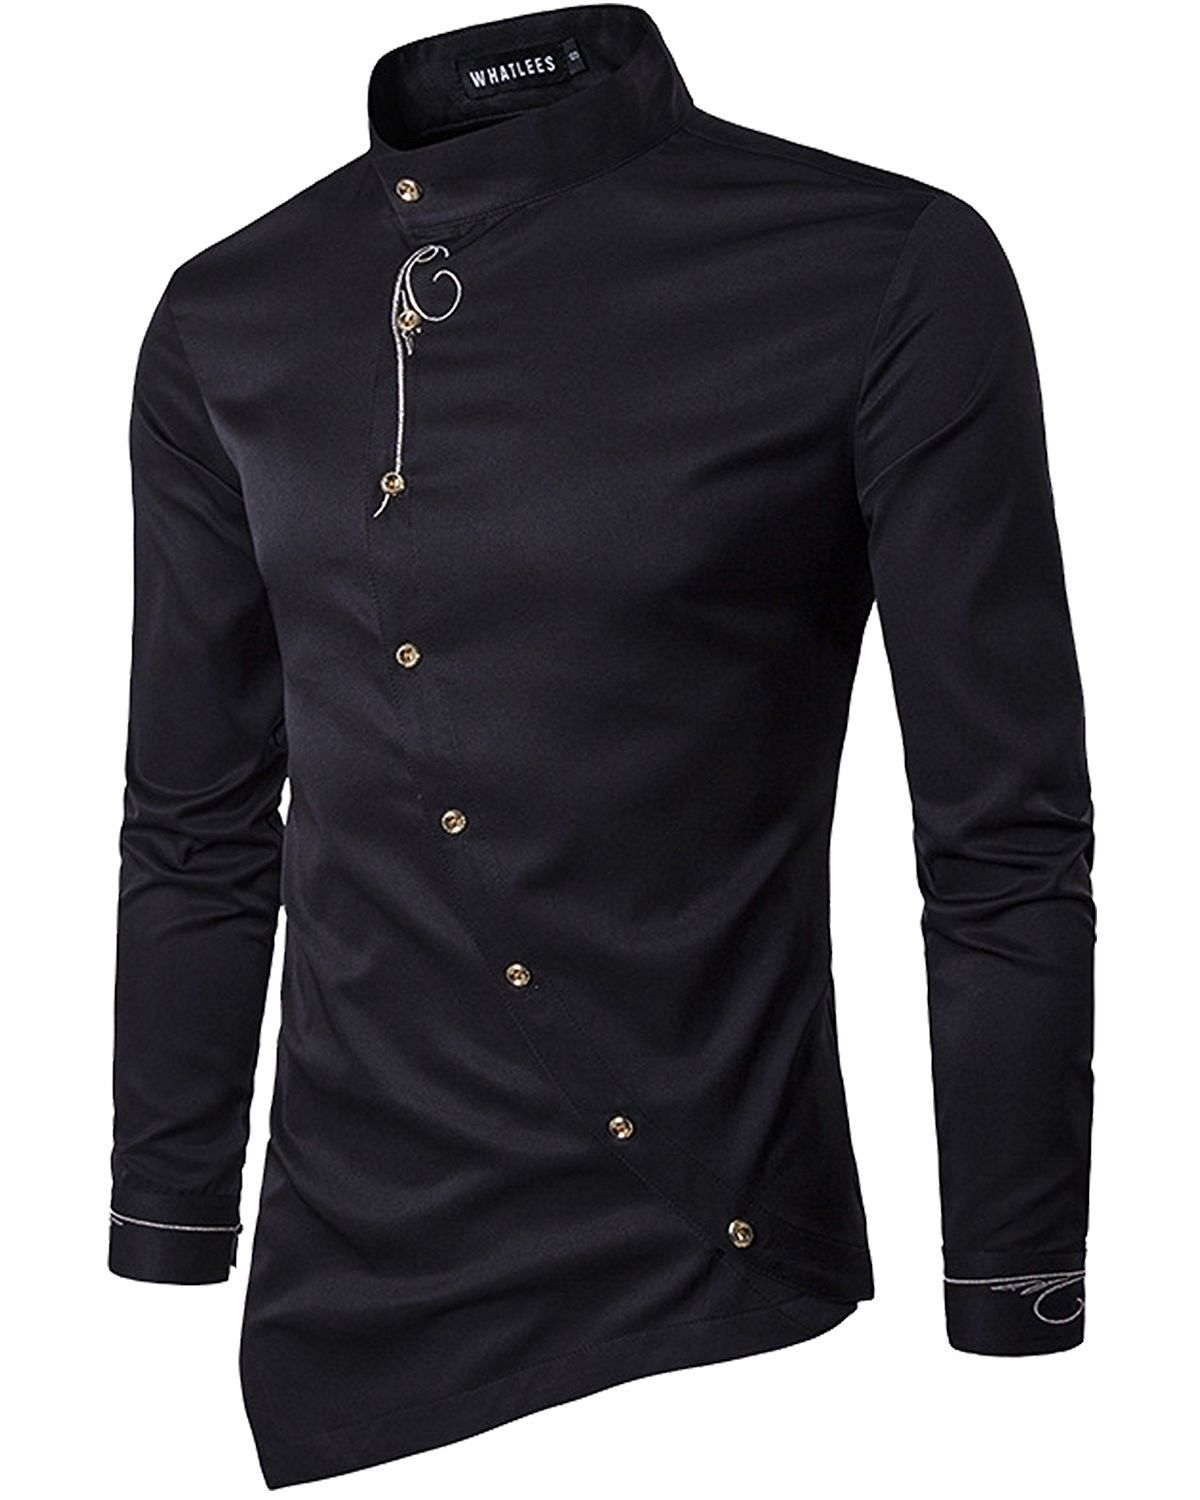 Men S Casual Long Sleeve Oblique Button Down Dress Shirt Tops With Embroidery Black Cd186zo6g77 Casual Long Sleeve Shirts Casual Shirts For Men Mens Shirt Dress [ 1500 x 1200 Pixel ]